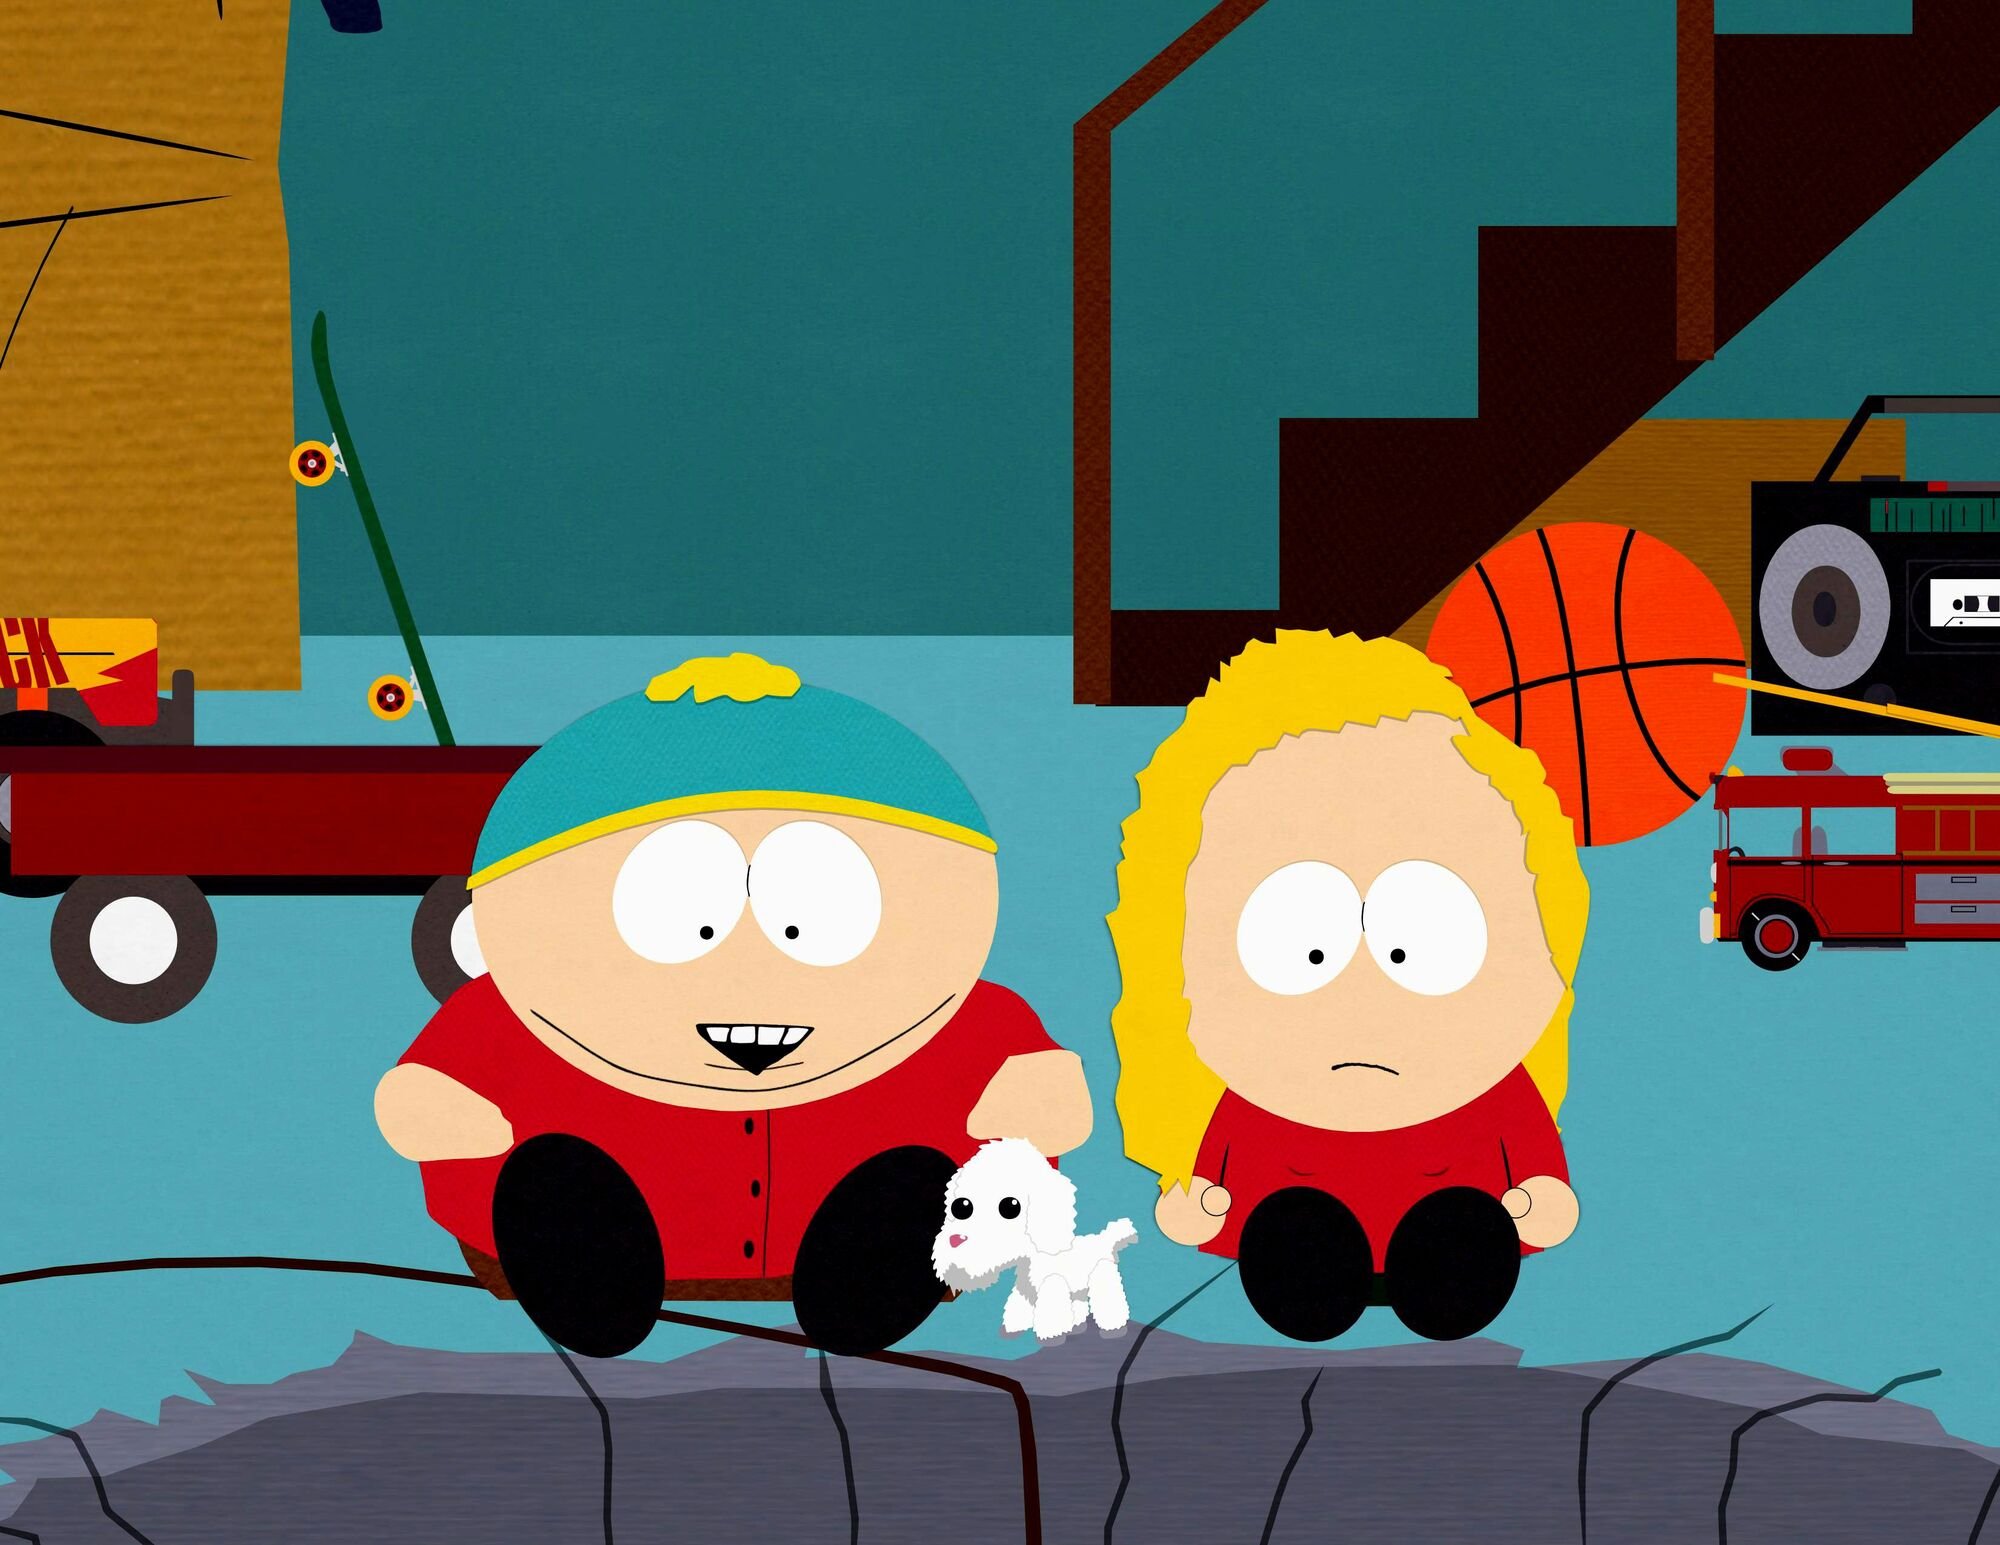 Bebe stevens gallery south park archives fandom - South park wallpaper butters ...